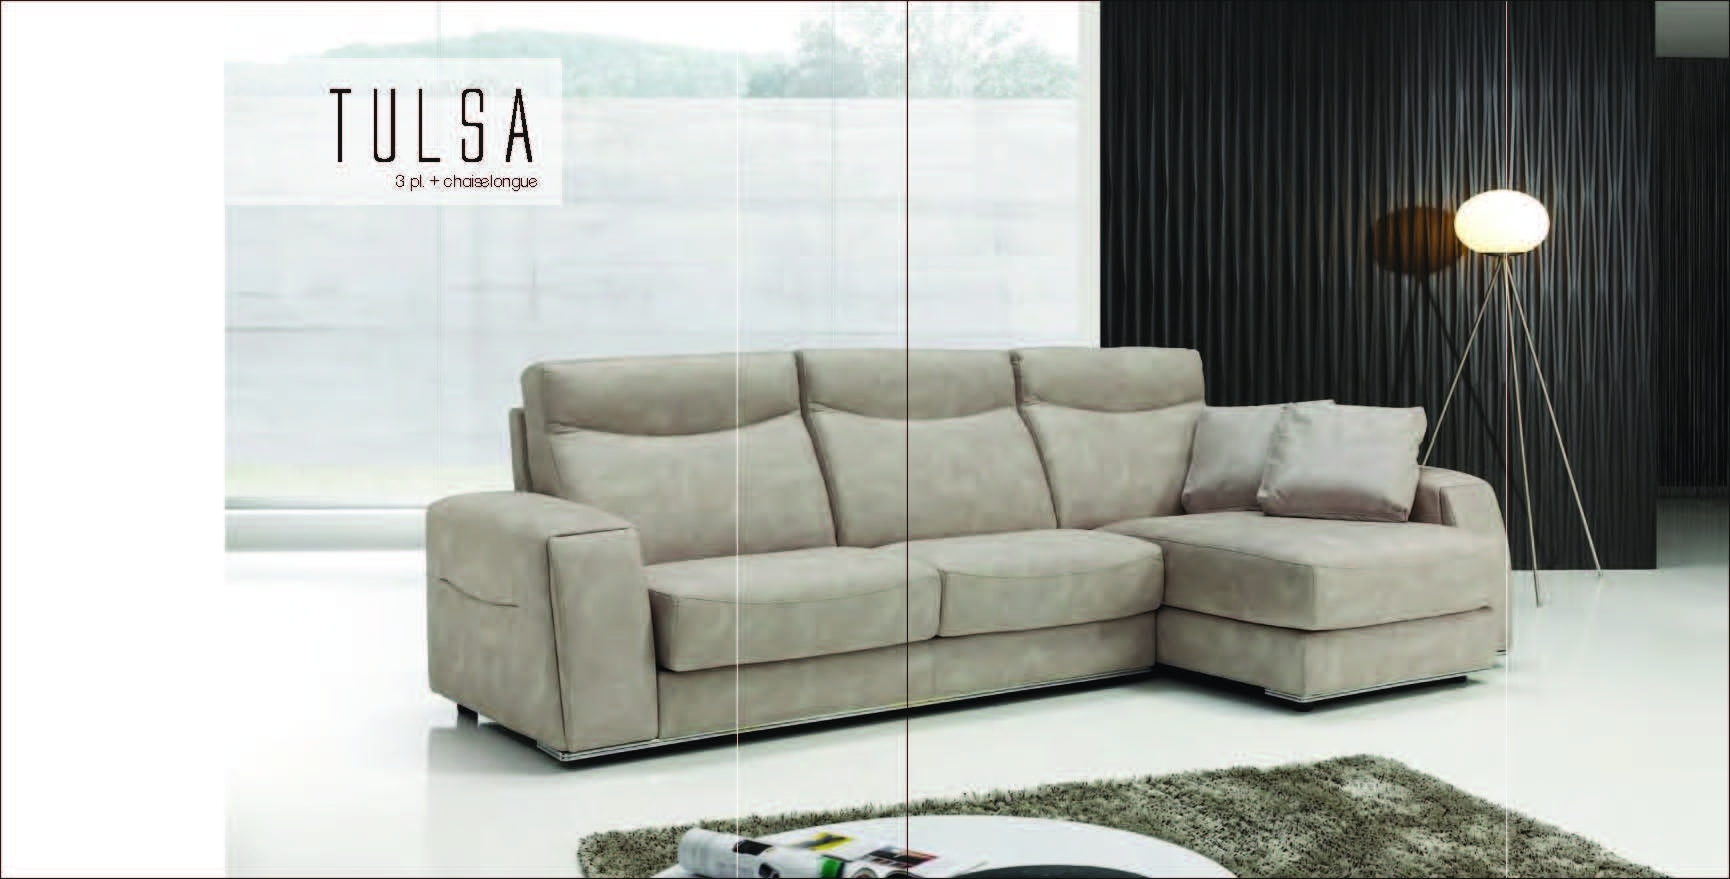 Tulsa, Vizcaino Modern Sectionals, Spain, Collections With Tulsa Sectional Sofas (View 10 of 10)